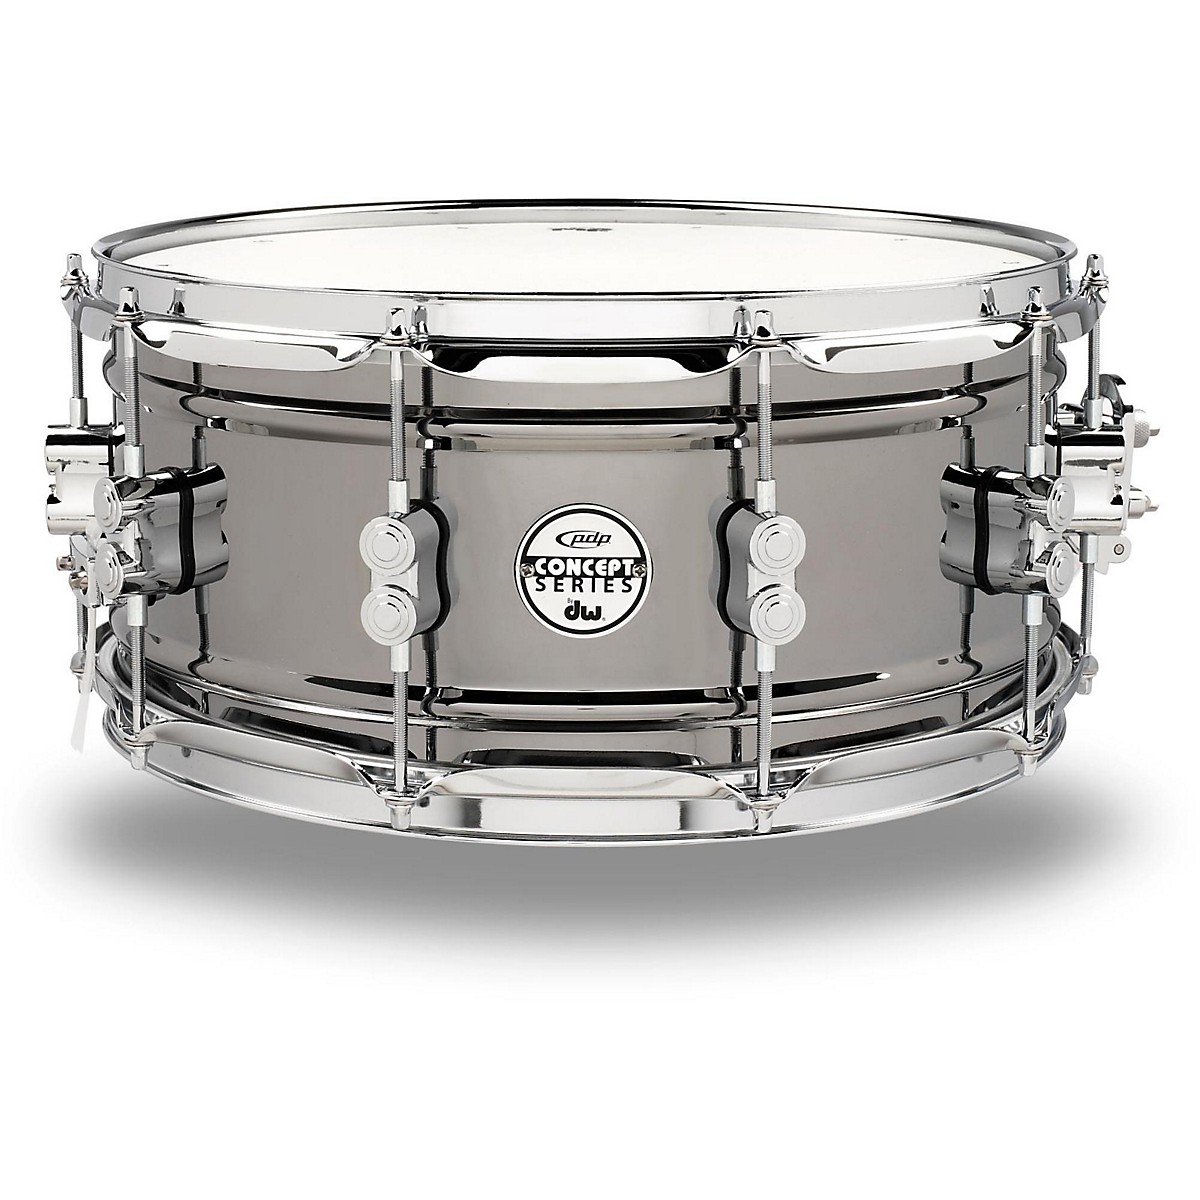 PDP by DW Concept Series Black Nickel Over Steel Snare Drum